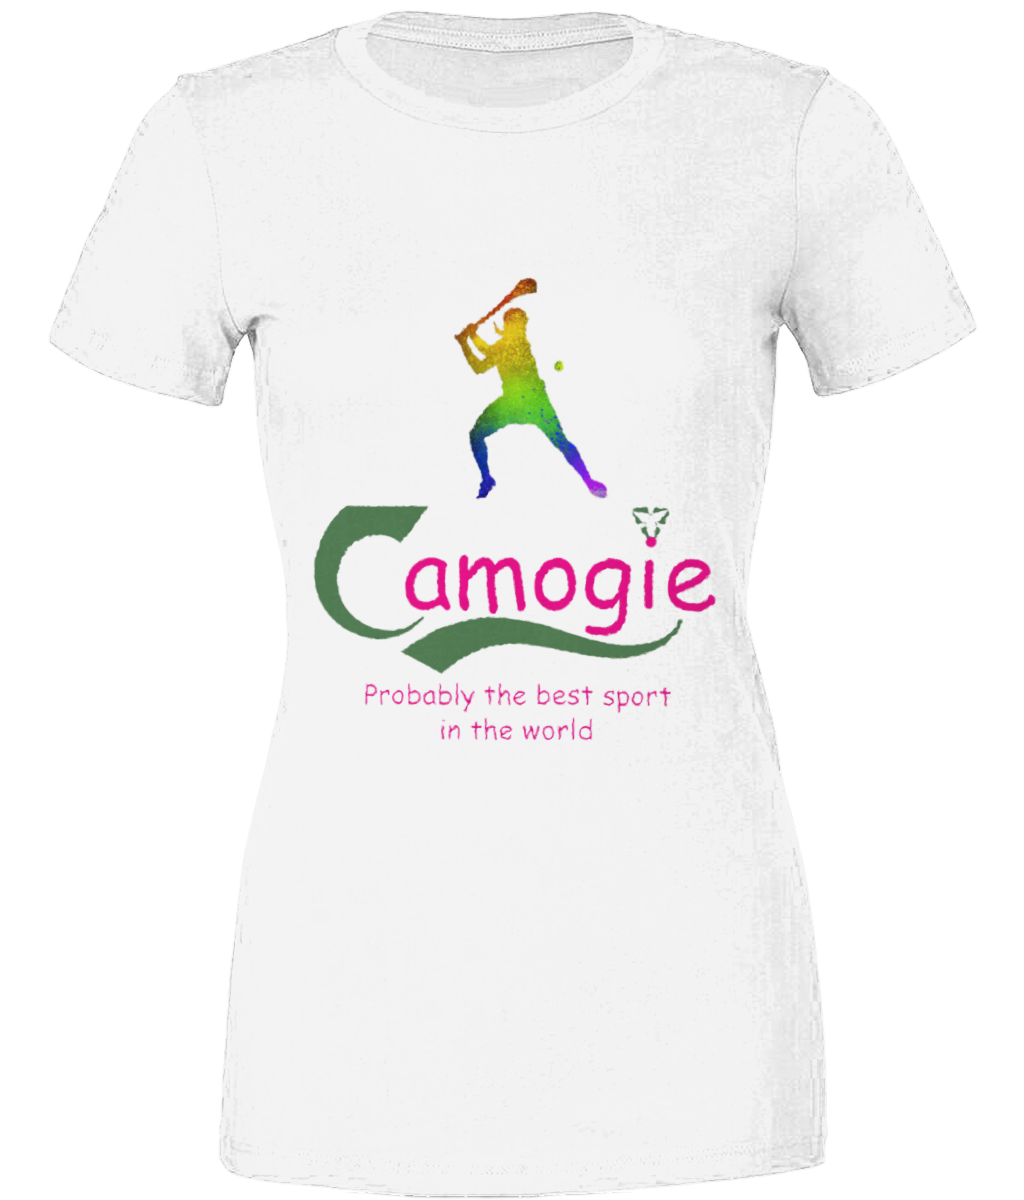 Ladies - Camogie, Probably the best sport in the world